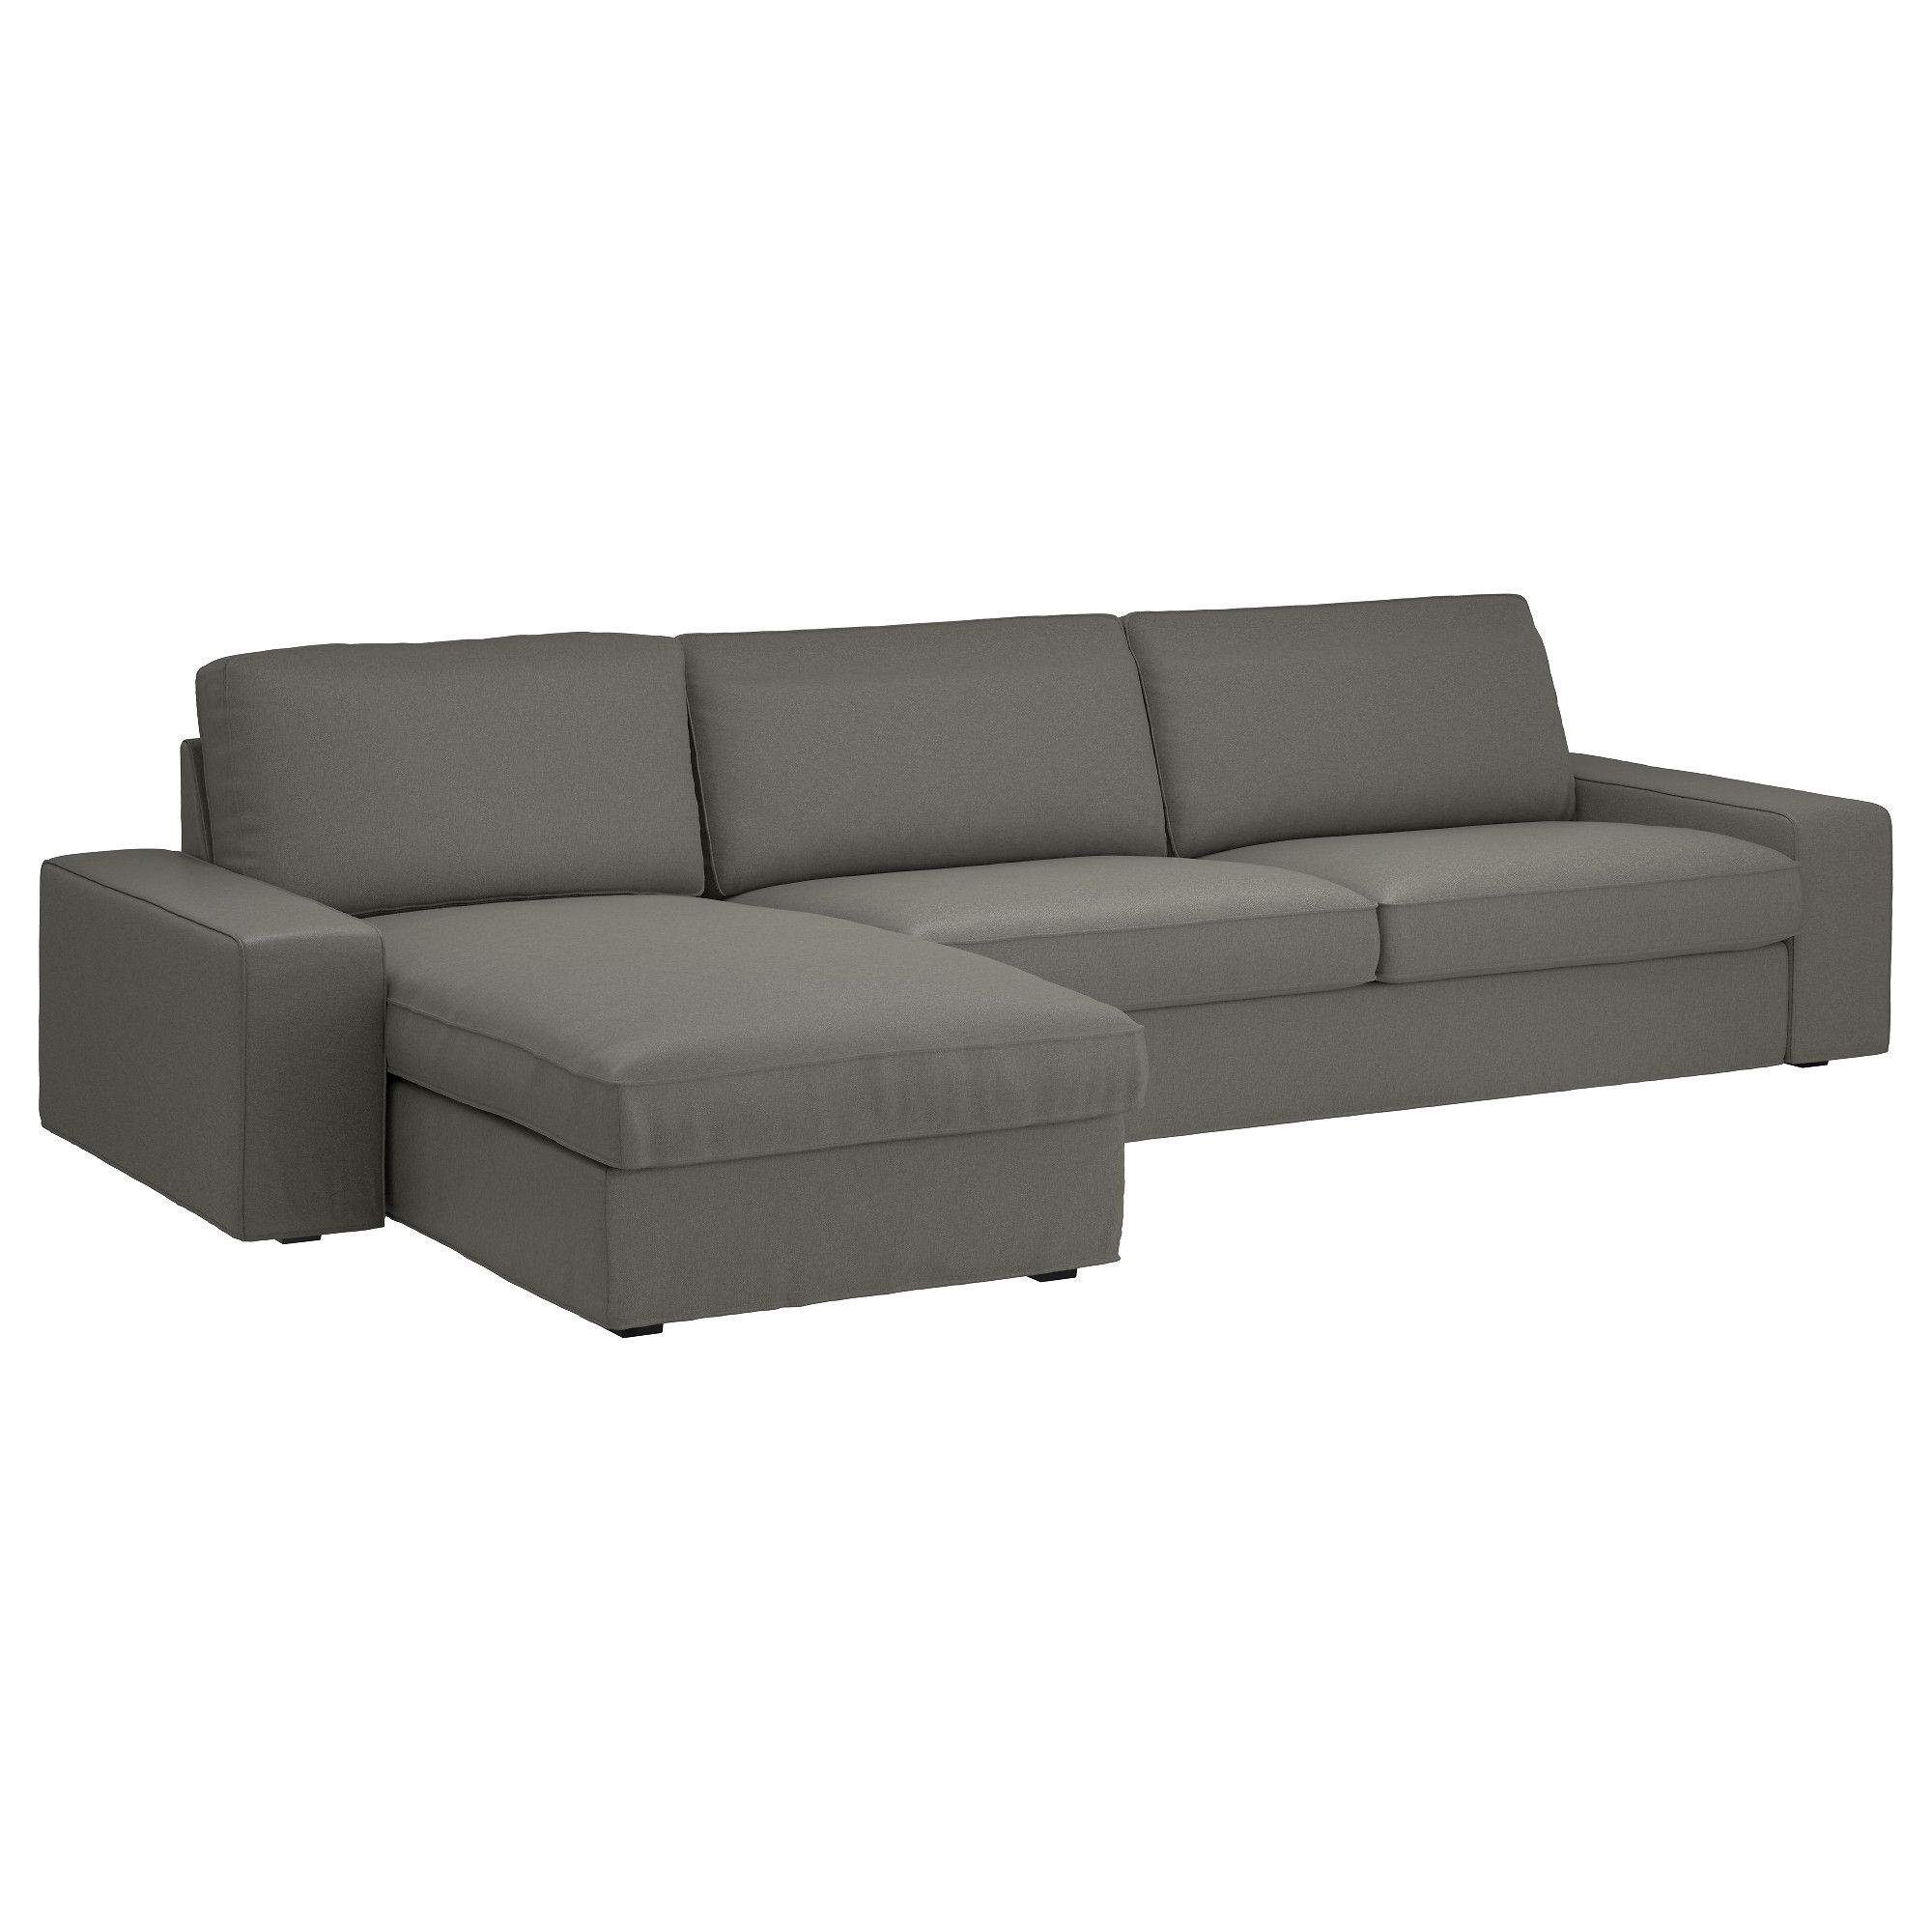 Kivik Sectional, 4 Seat – Orrsta Light Gray – Ikea With Latest Ikea Chaise Couches (Gallery 2 of 15)